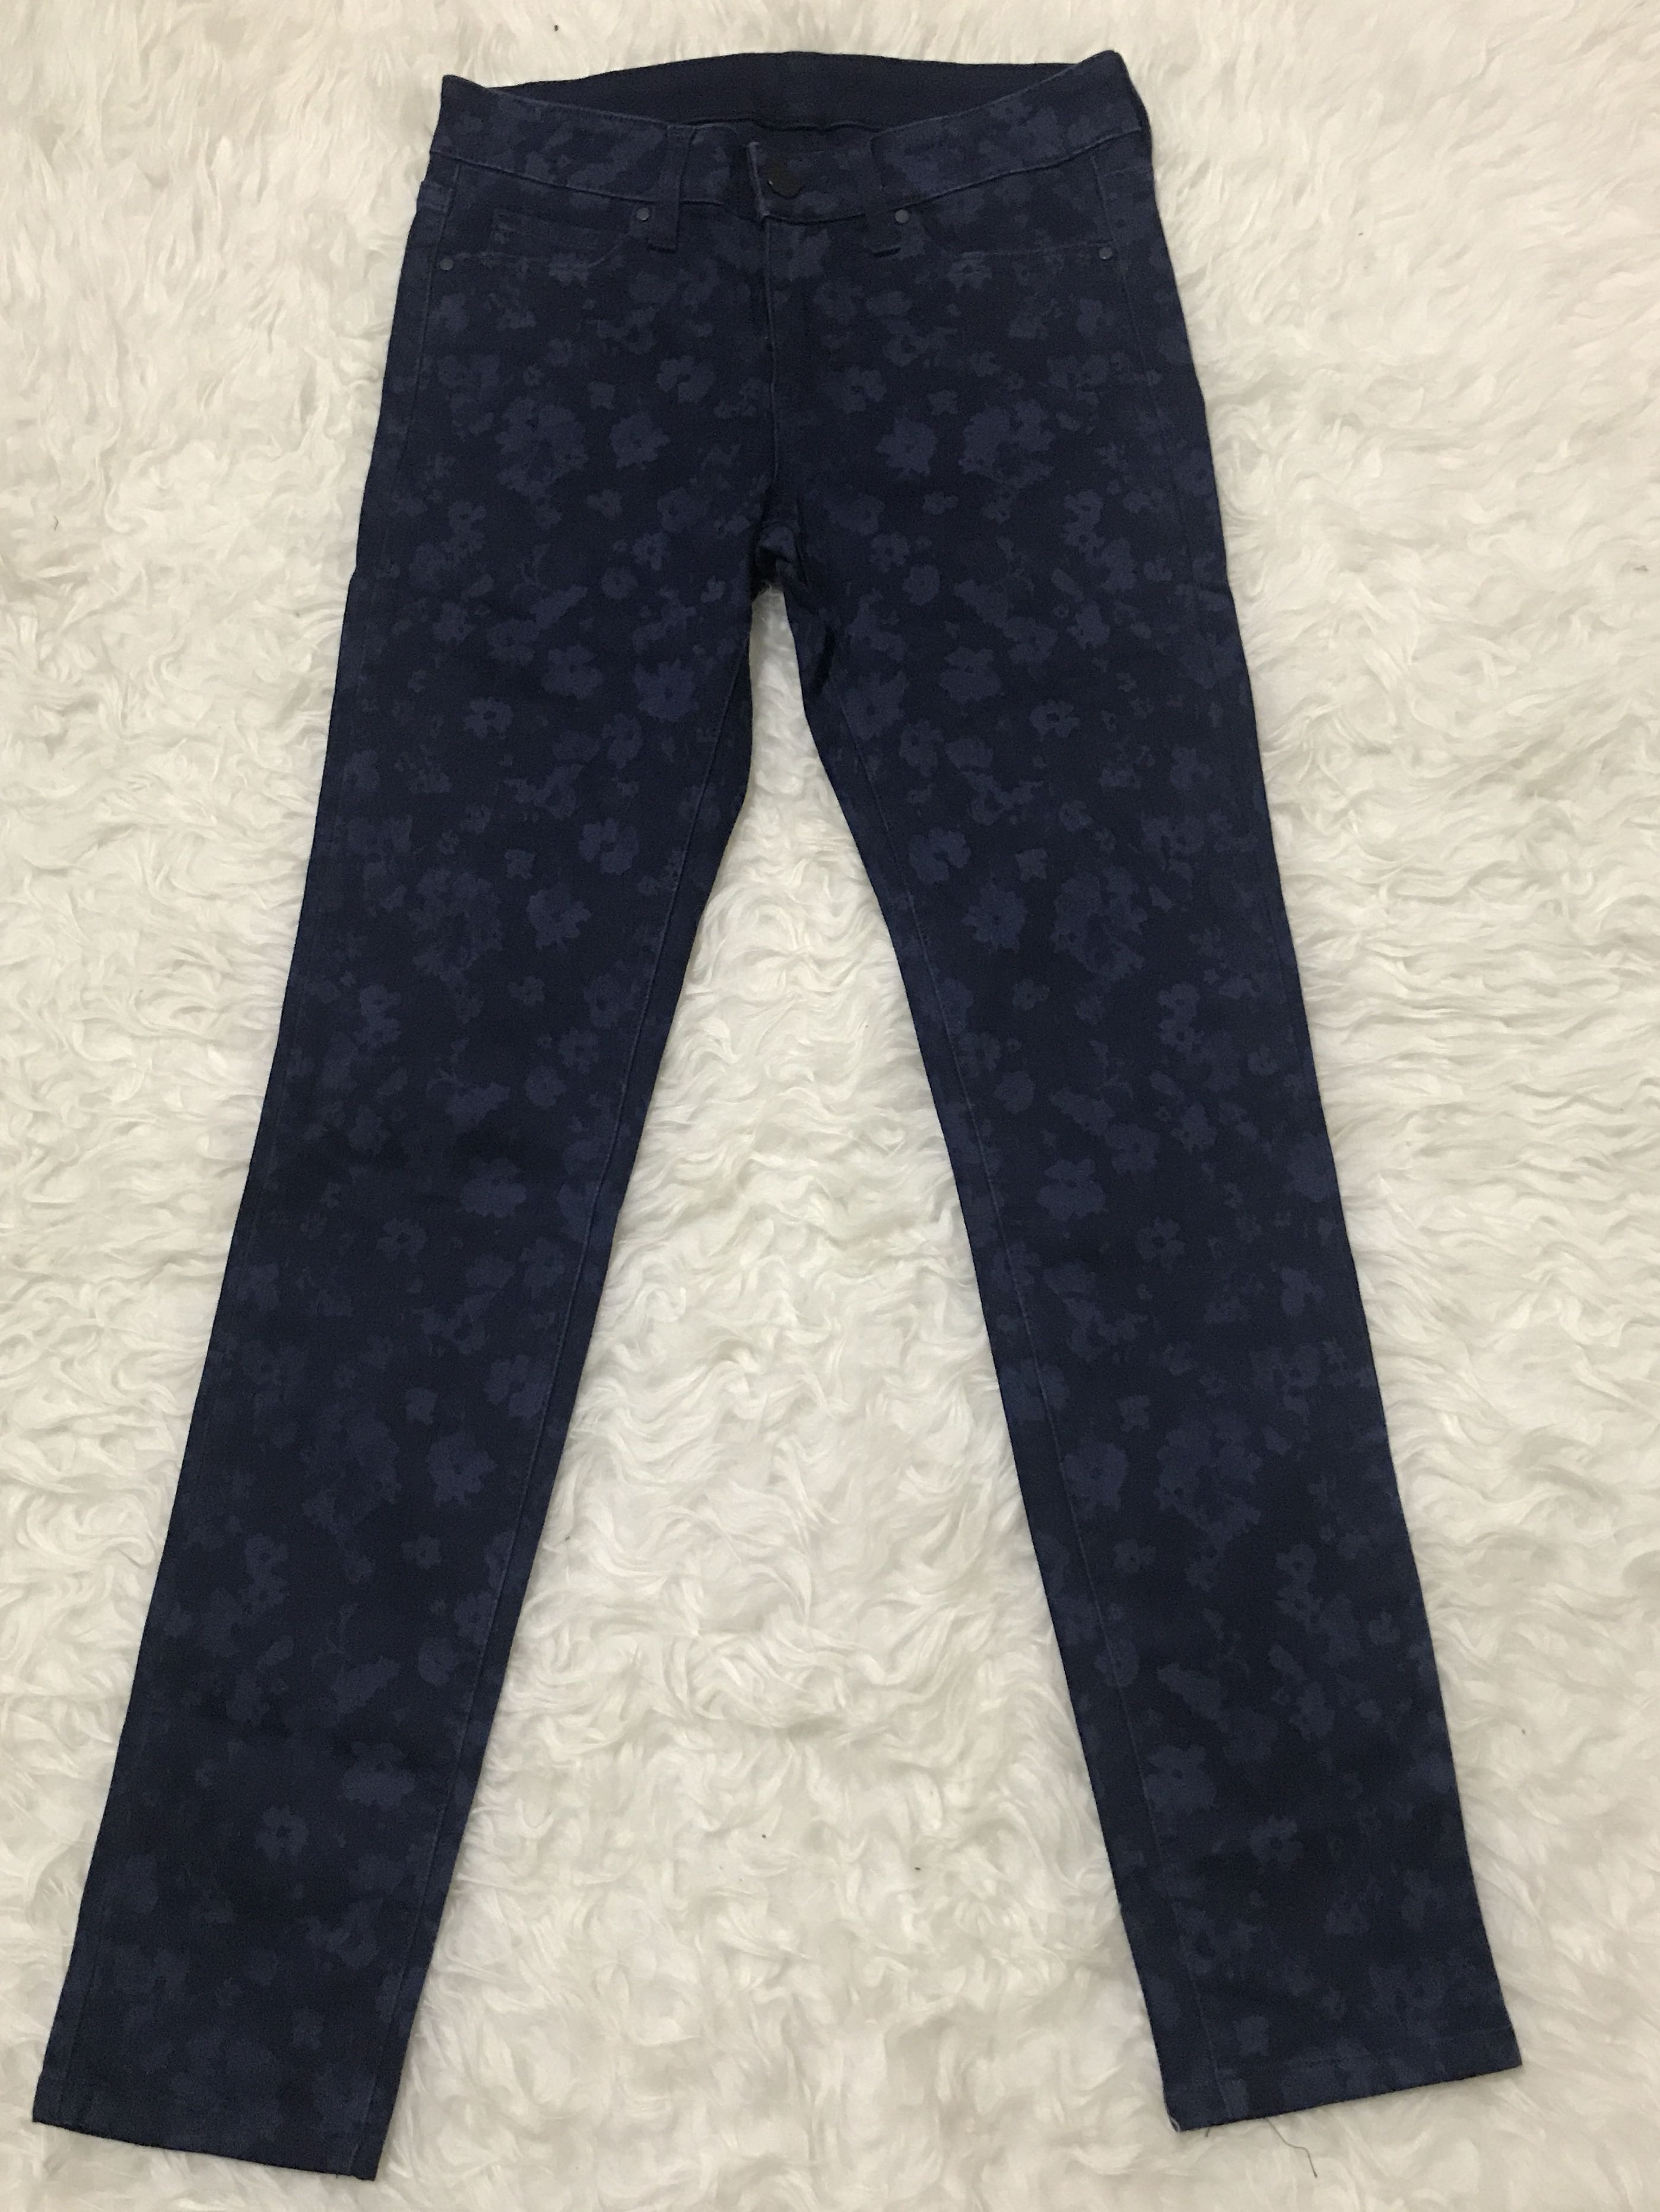 Uniqlo dark blue floral printed/patterned skinny jeans ultra stretch, Women's Fashion, Women's Clothes on Carousell